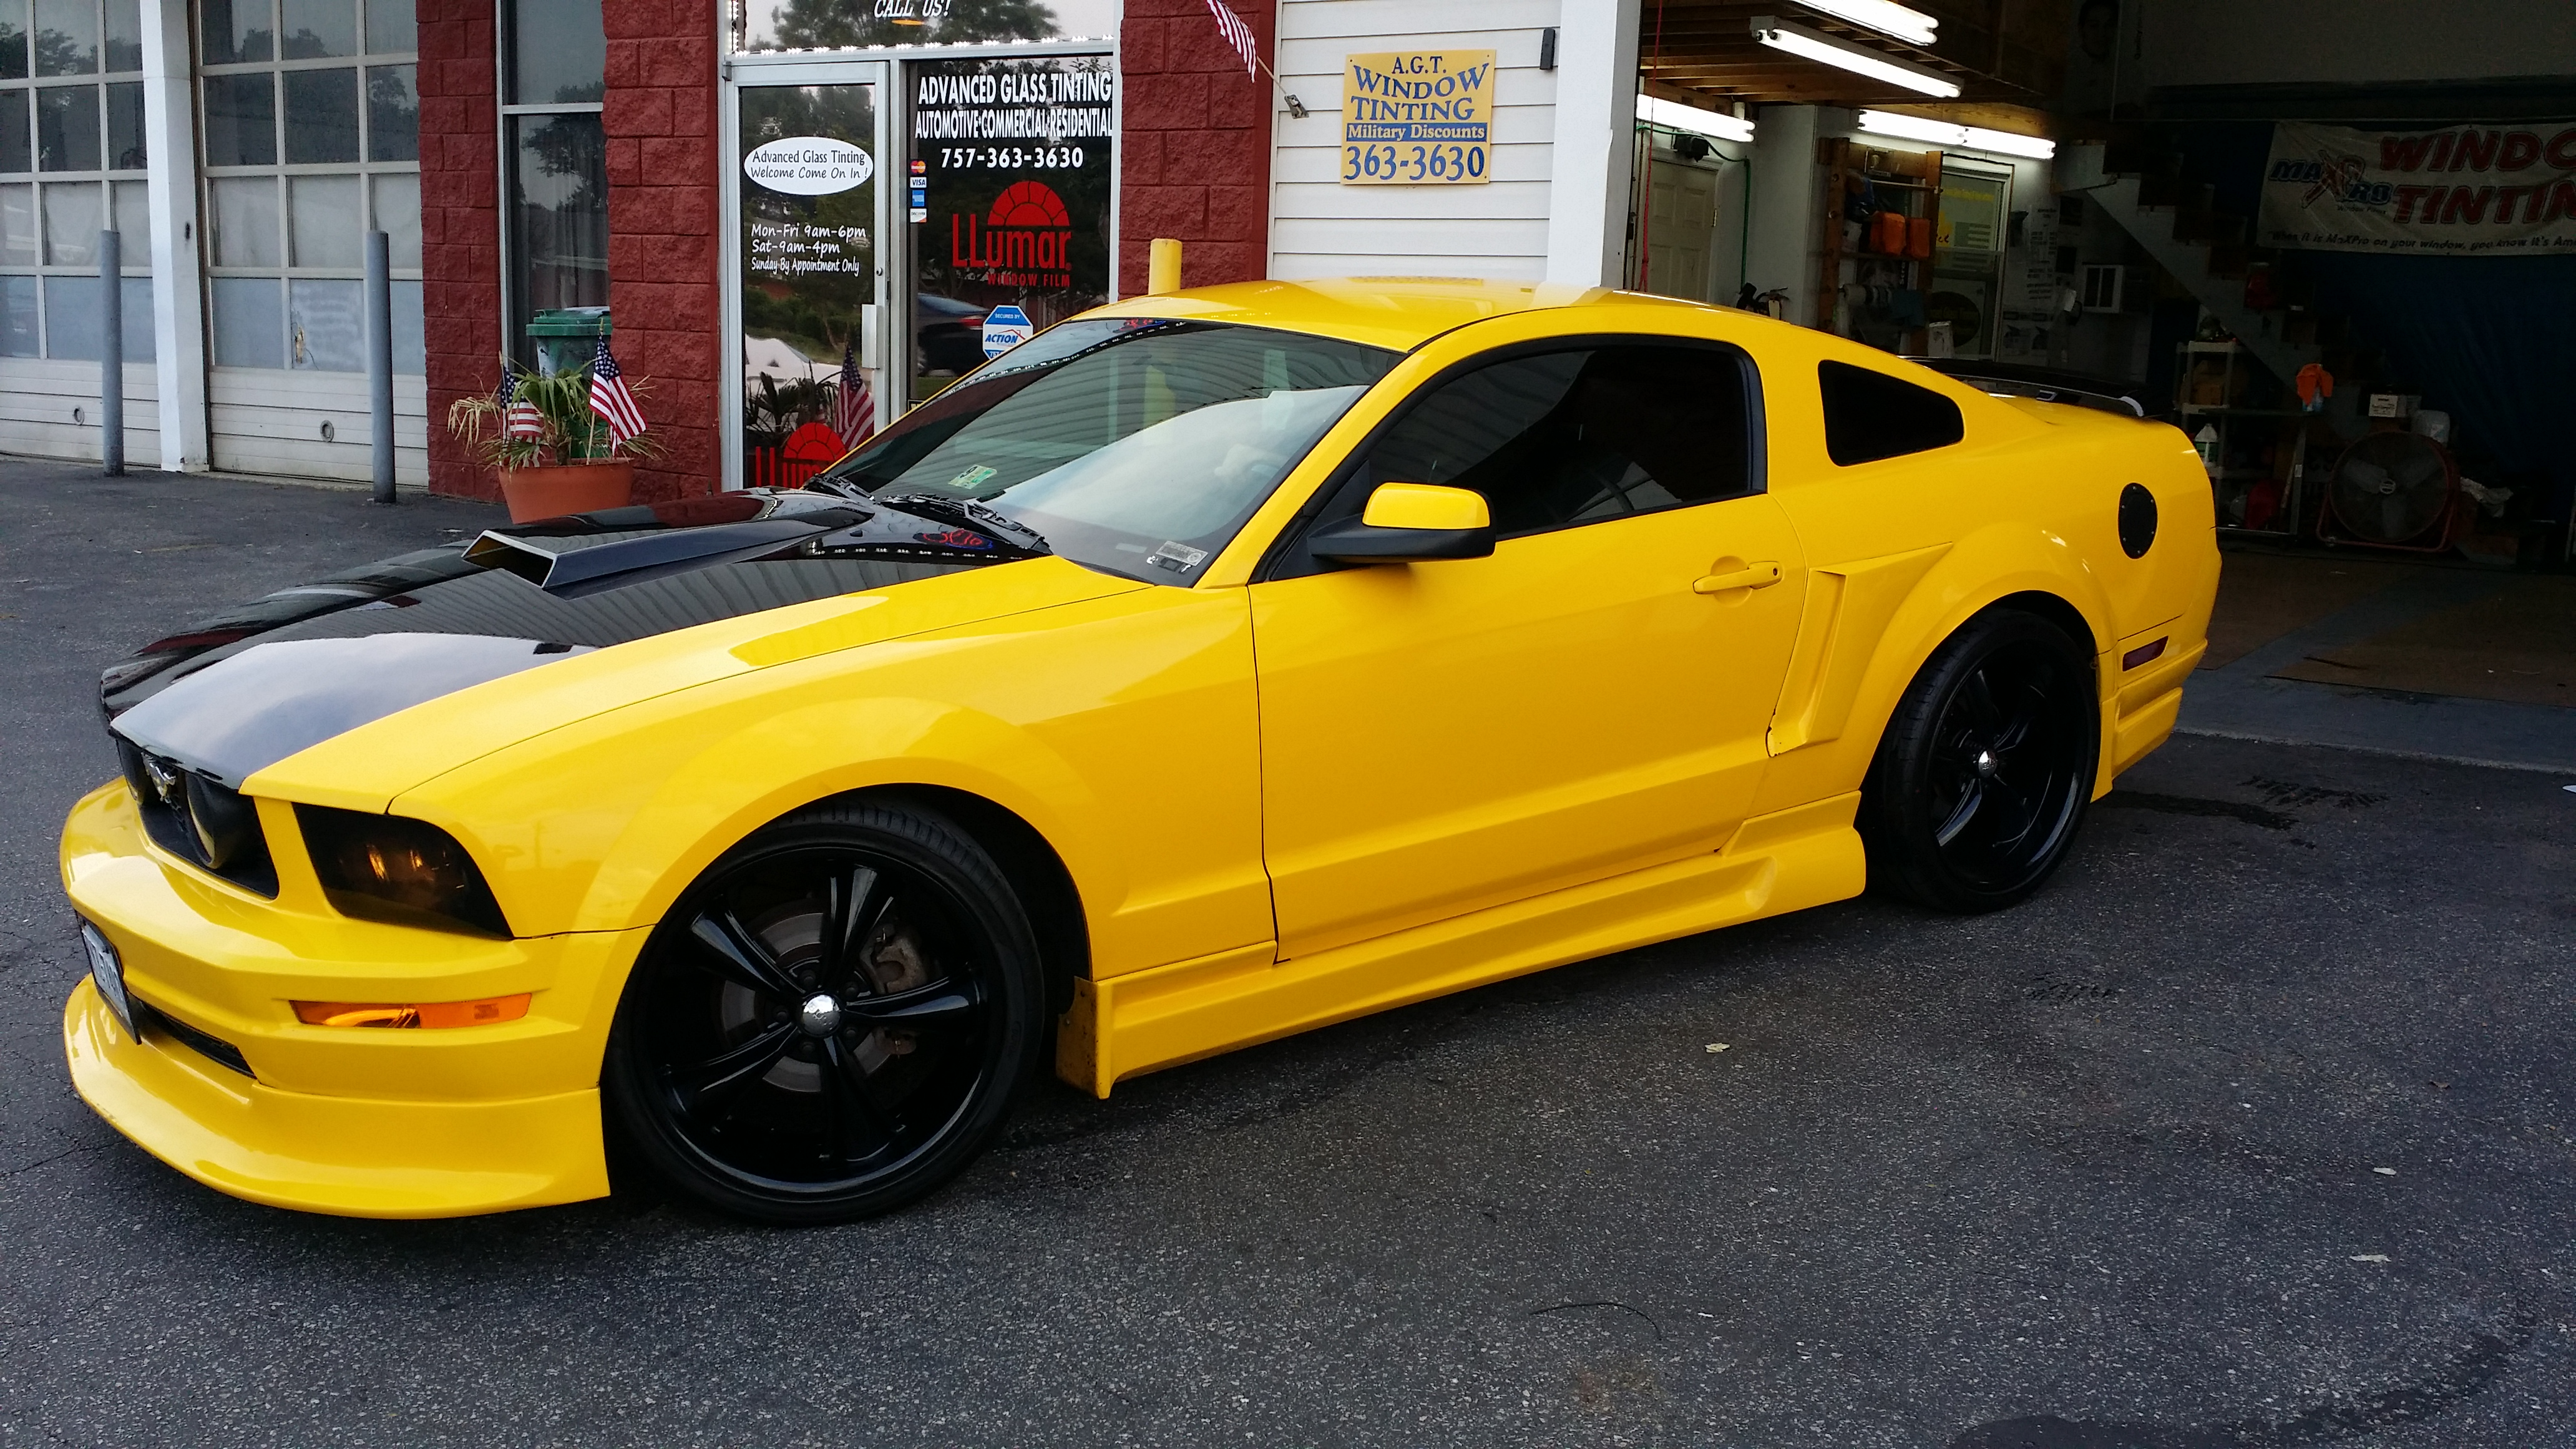 Tnt Tinting Virginia Beach >> Advanced Glass Tinting 1493 Diamond Springs Rd Ste 108 Virginia